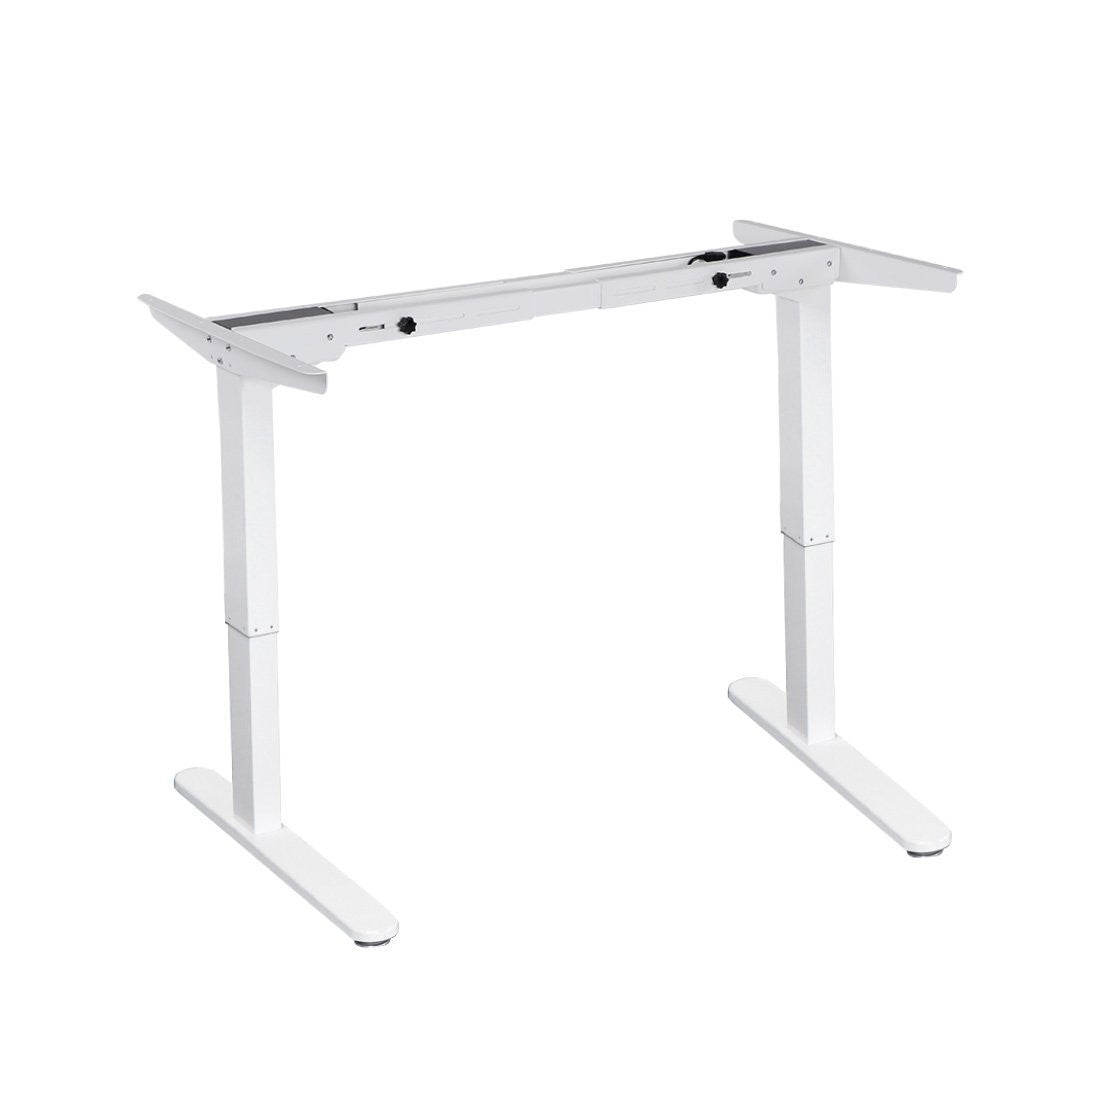 Thingy Club E2B Height Adjustable Electric Standing Desk Frame Only ,